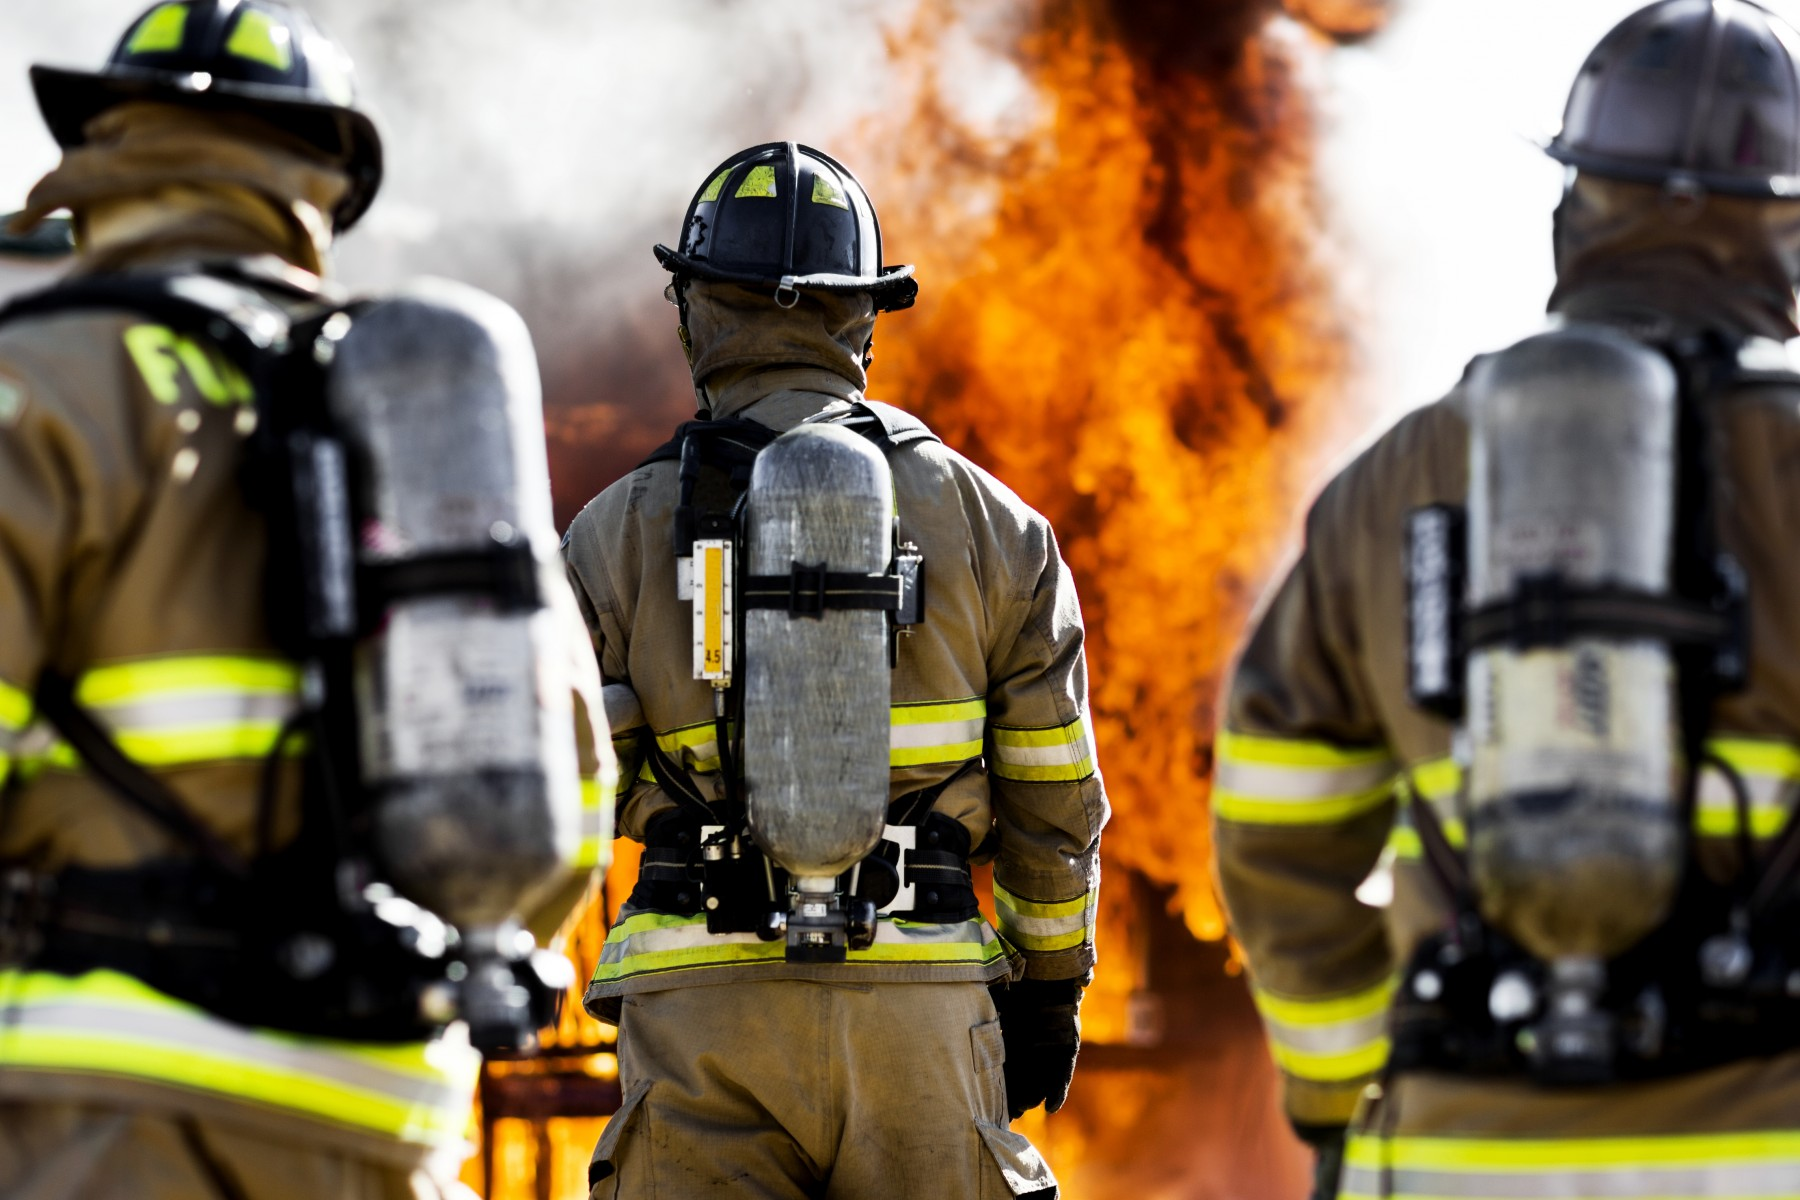 Equipment offered through the category include custom fire chassis, demo/stock units, aerial units, pumpers, rescue vehicles, tankers, aircraft rescue firefighting equipment, custom emergency vehicles, customizable apparatus, and more.